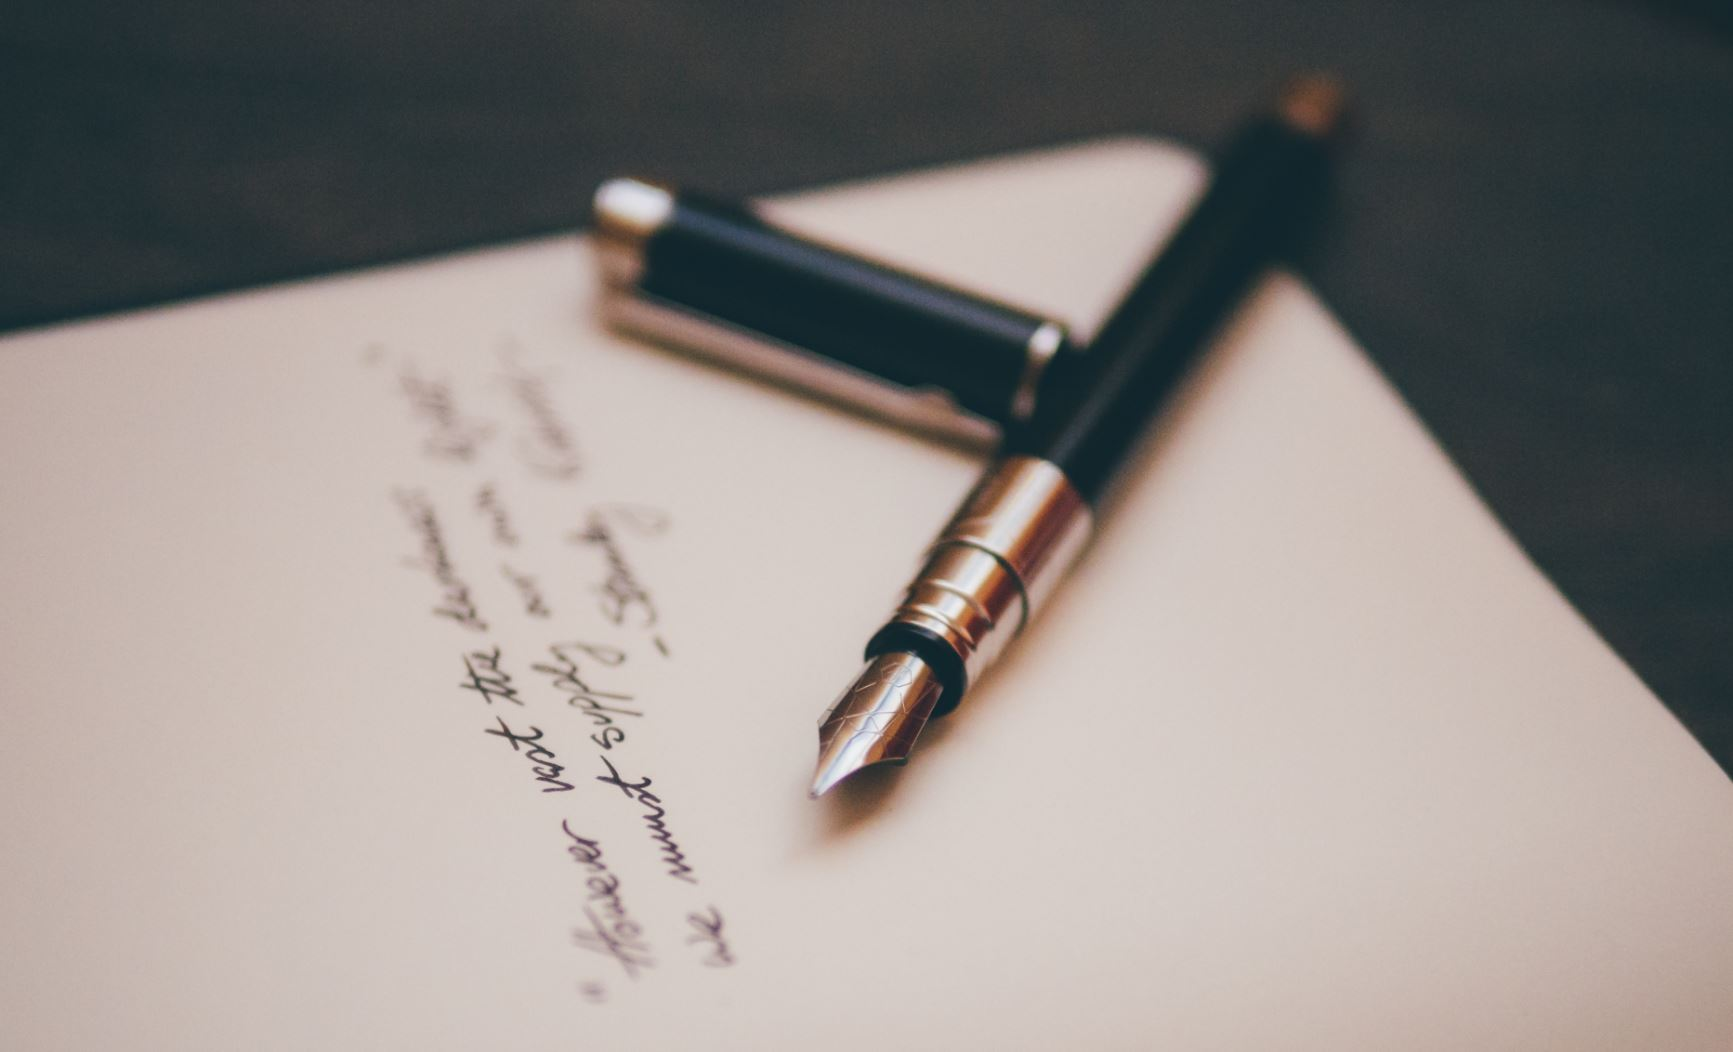 how to write a handwritten thank-you note